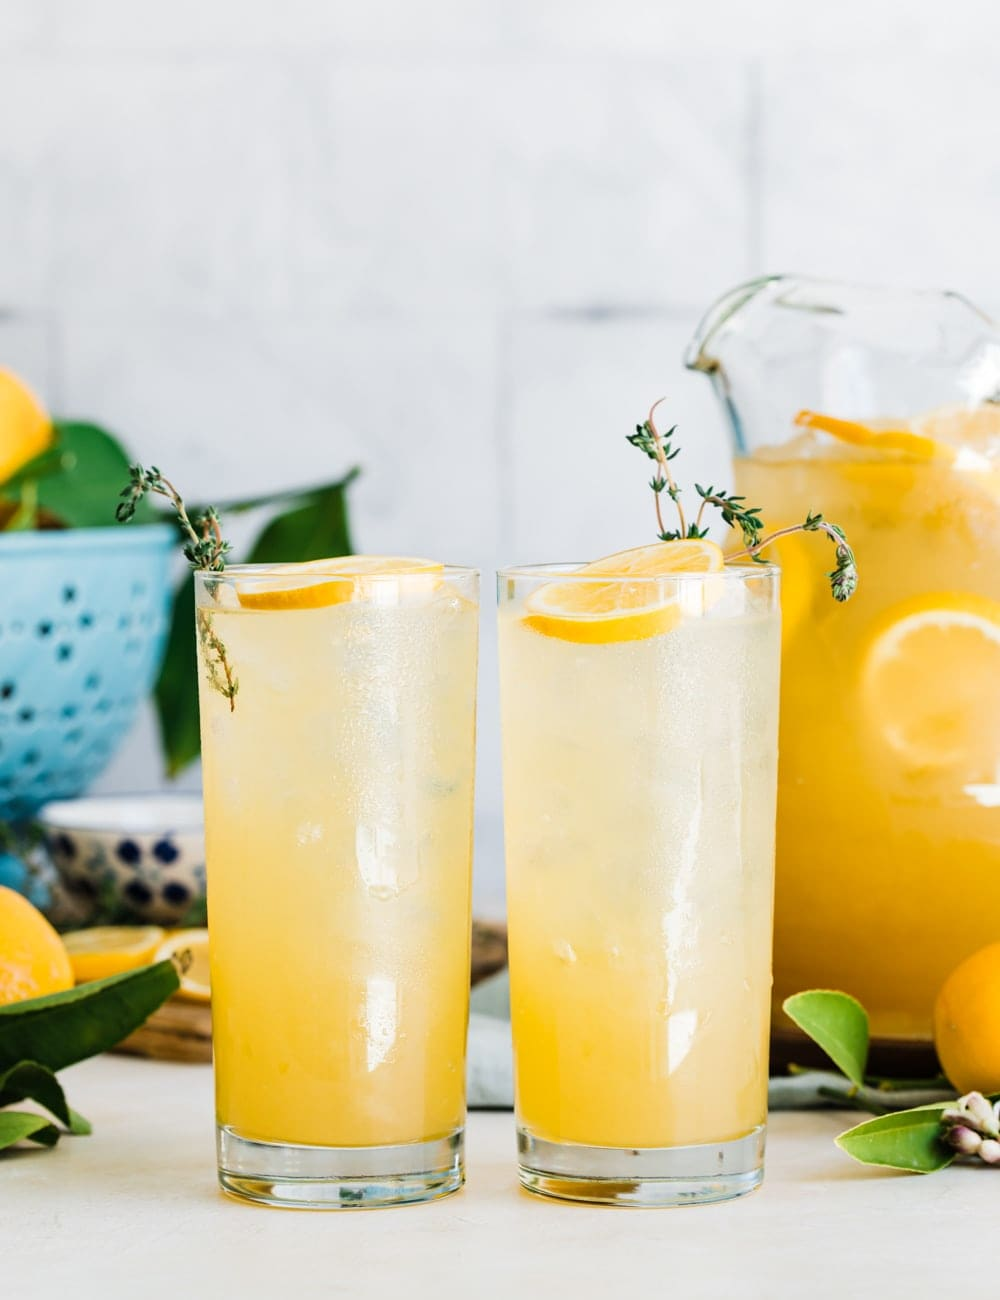 two tall collins glasses filled with lemonade, lemon slices and fresh thyme in glasses, pitcher or lemonade, fresh whole lemons, blue bowl with lemons, cutting board with lemon slices